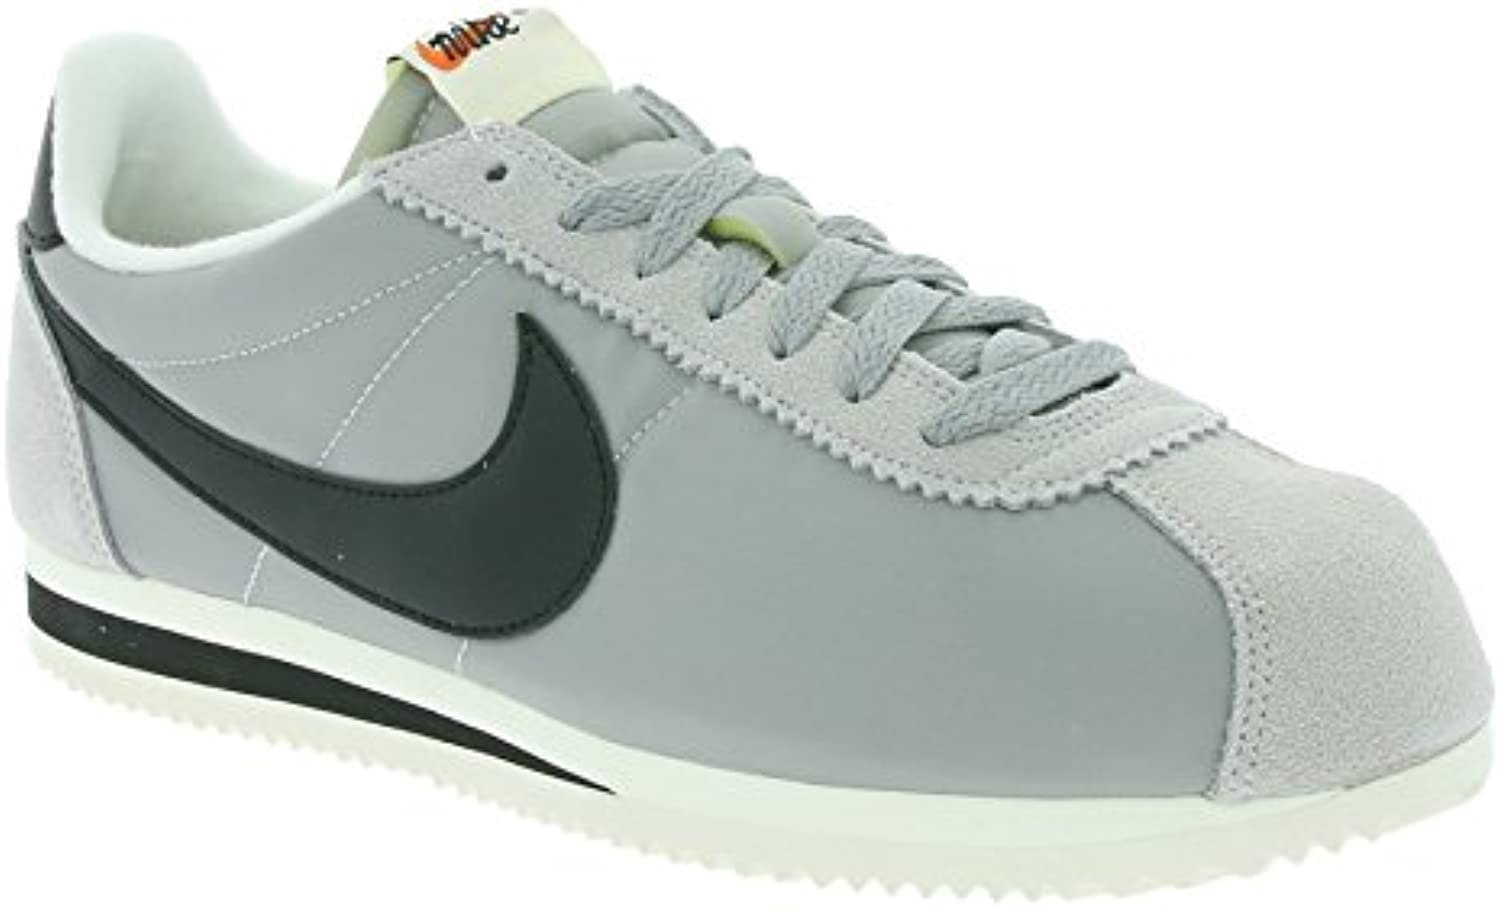 nike chaussures, hommes 844855-001 fitness & eacute; chaussures, nike gris b01idlefjy parent d0f5ee